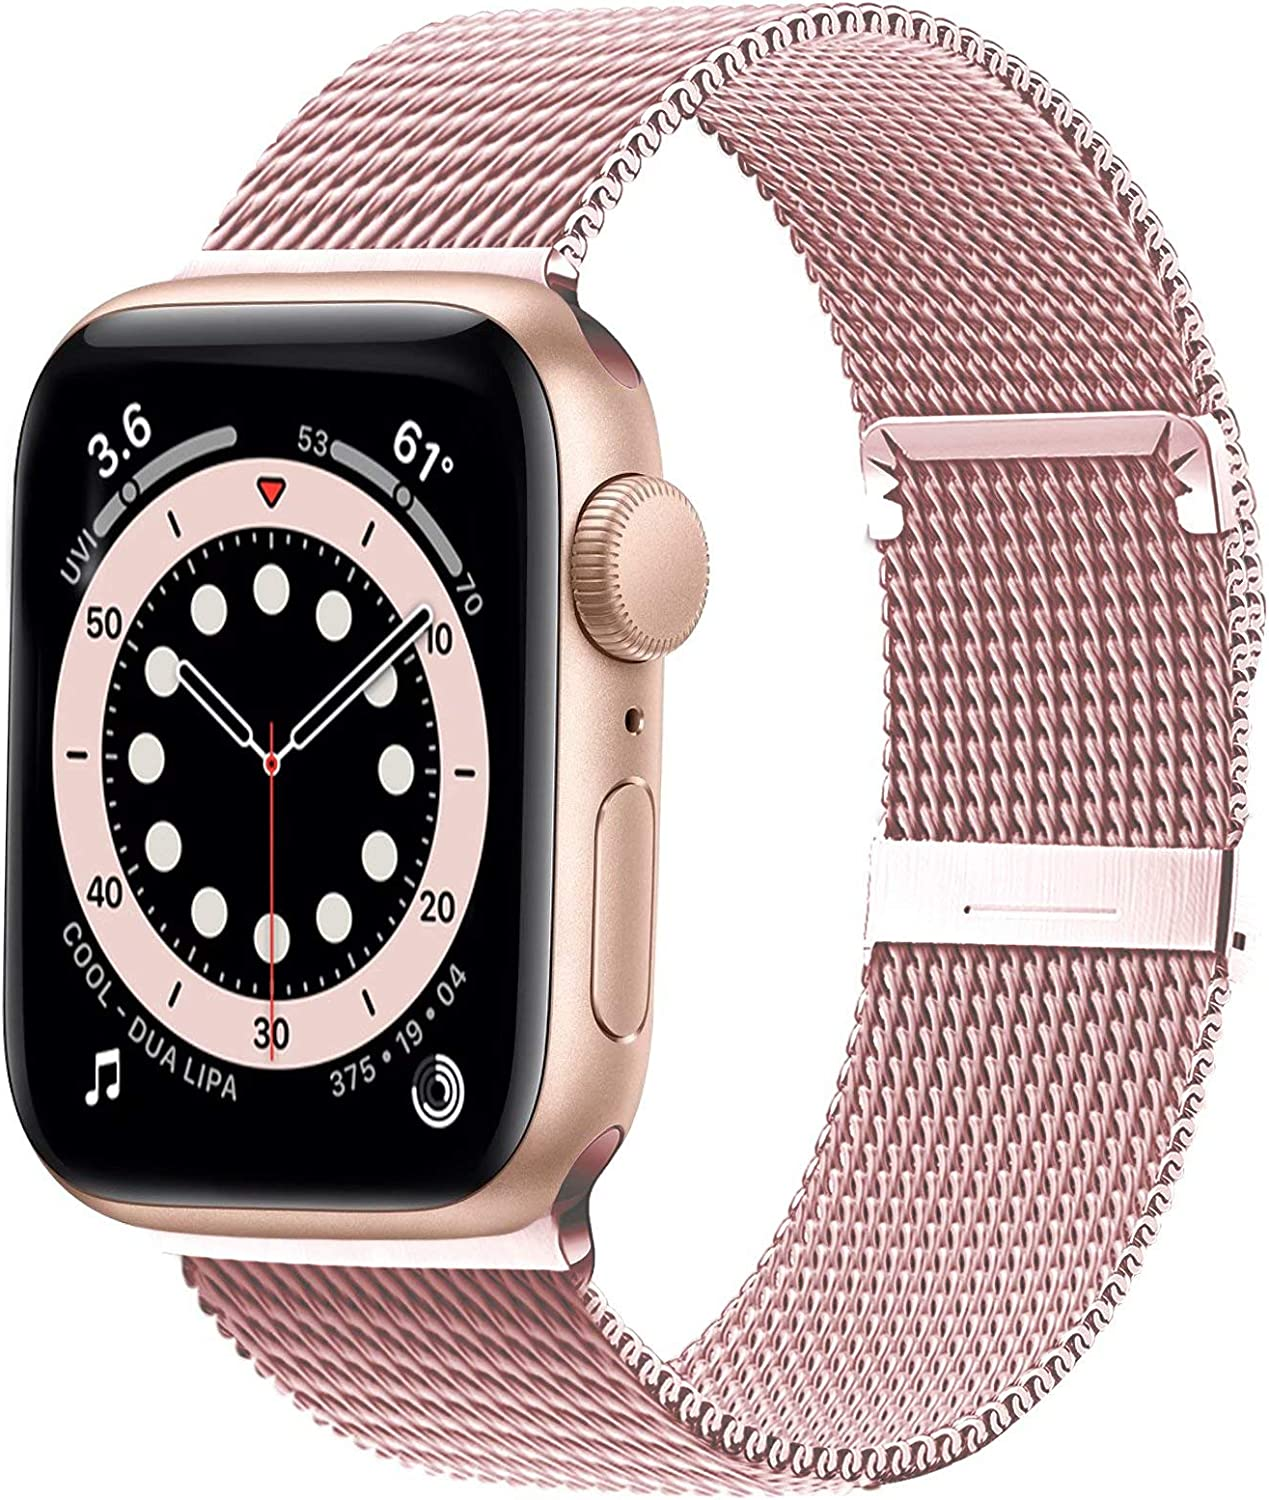 Ewsprou Magnetic Band Compatible with Apple Watch 38mm 40mm 42mm 44mm, Stainless Steel Mesh Strap Replacement for iWatch SE iWatch Series 6/5/4/3/2/1 Women Men (Rose Gold, 38mm 40mm)